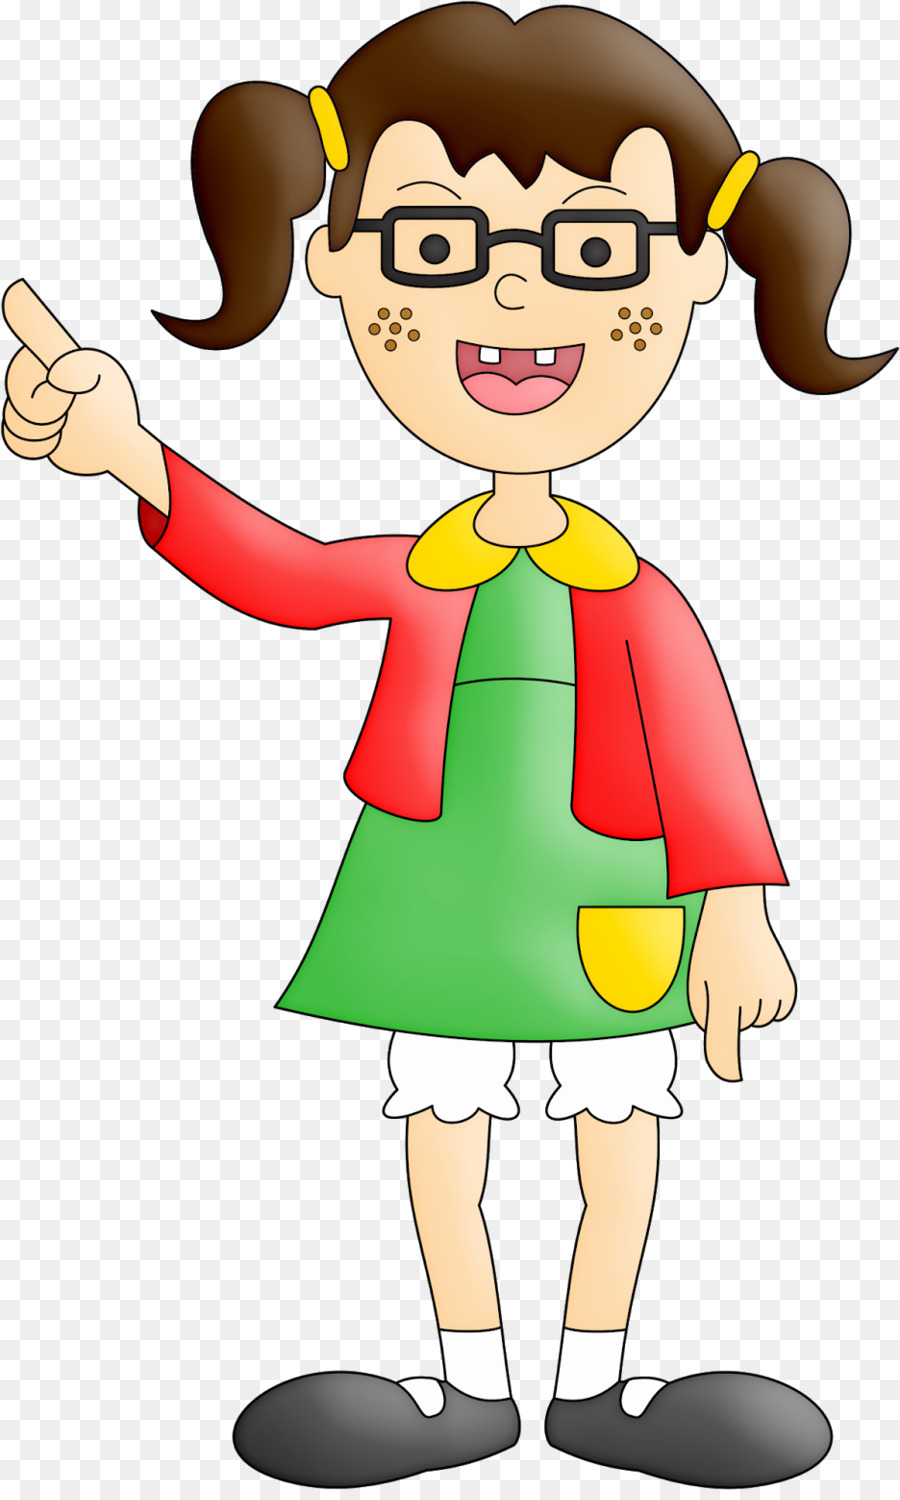 La Chilindrina Cartoon png download.